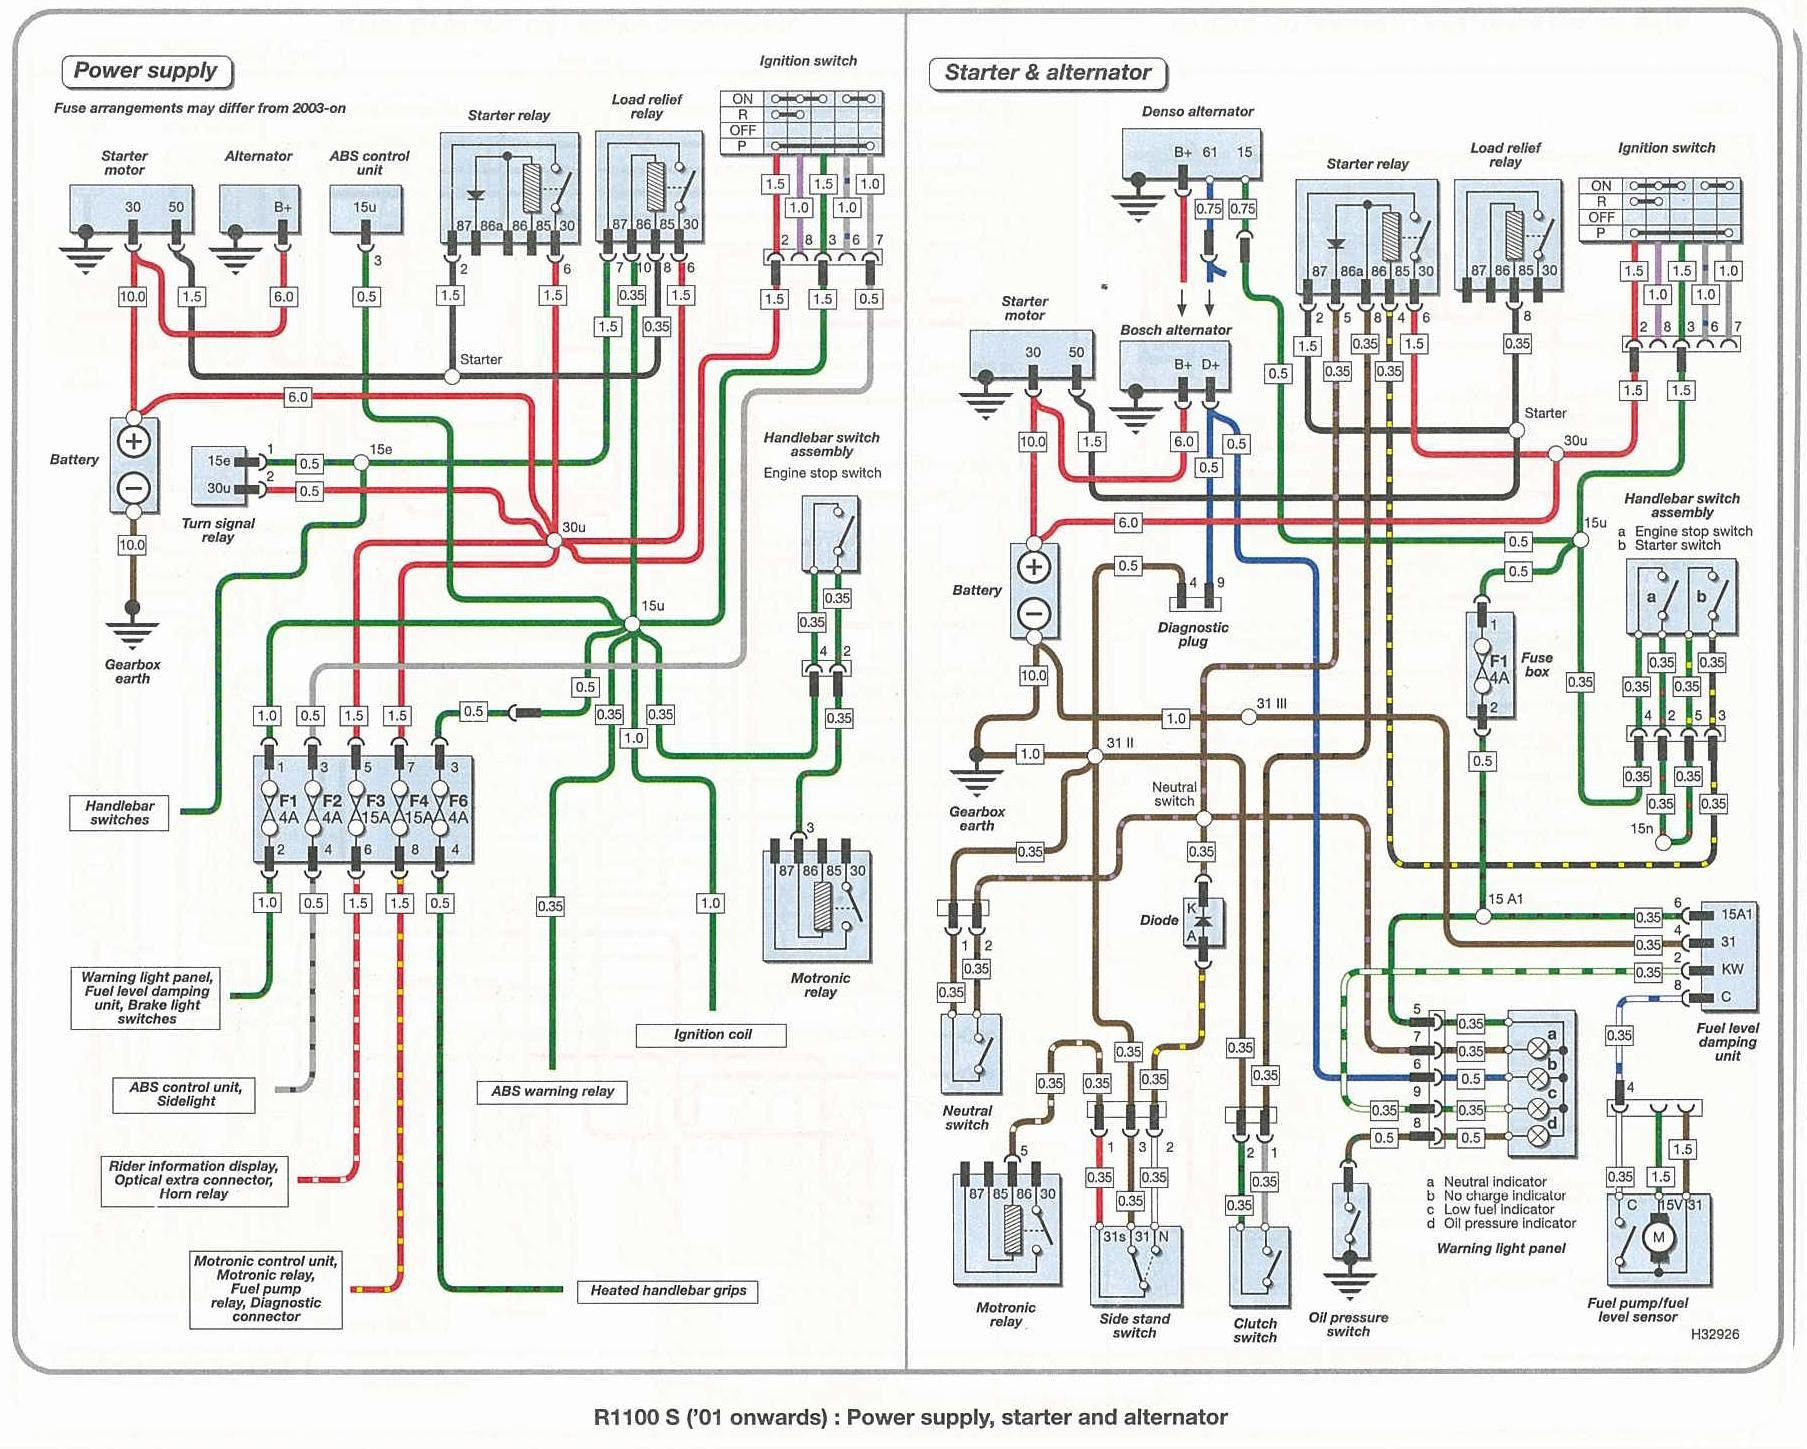 Bmw F650gs Electrical Wiring Diagram 2 Electrical Wiring Diagram Bmw Electrical Diagram